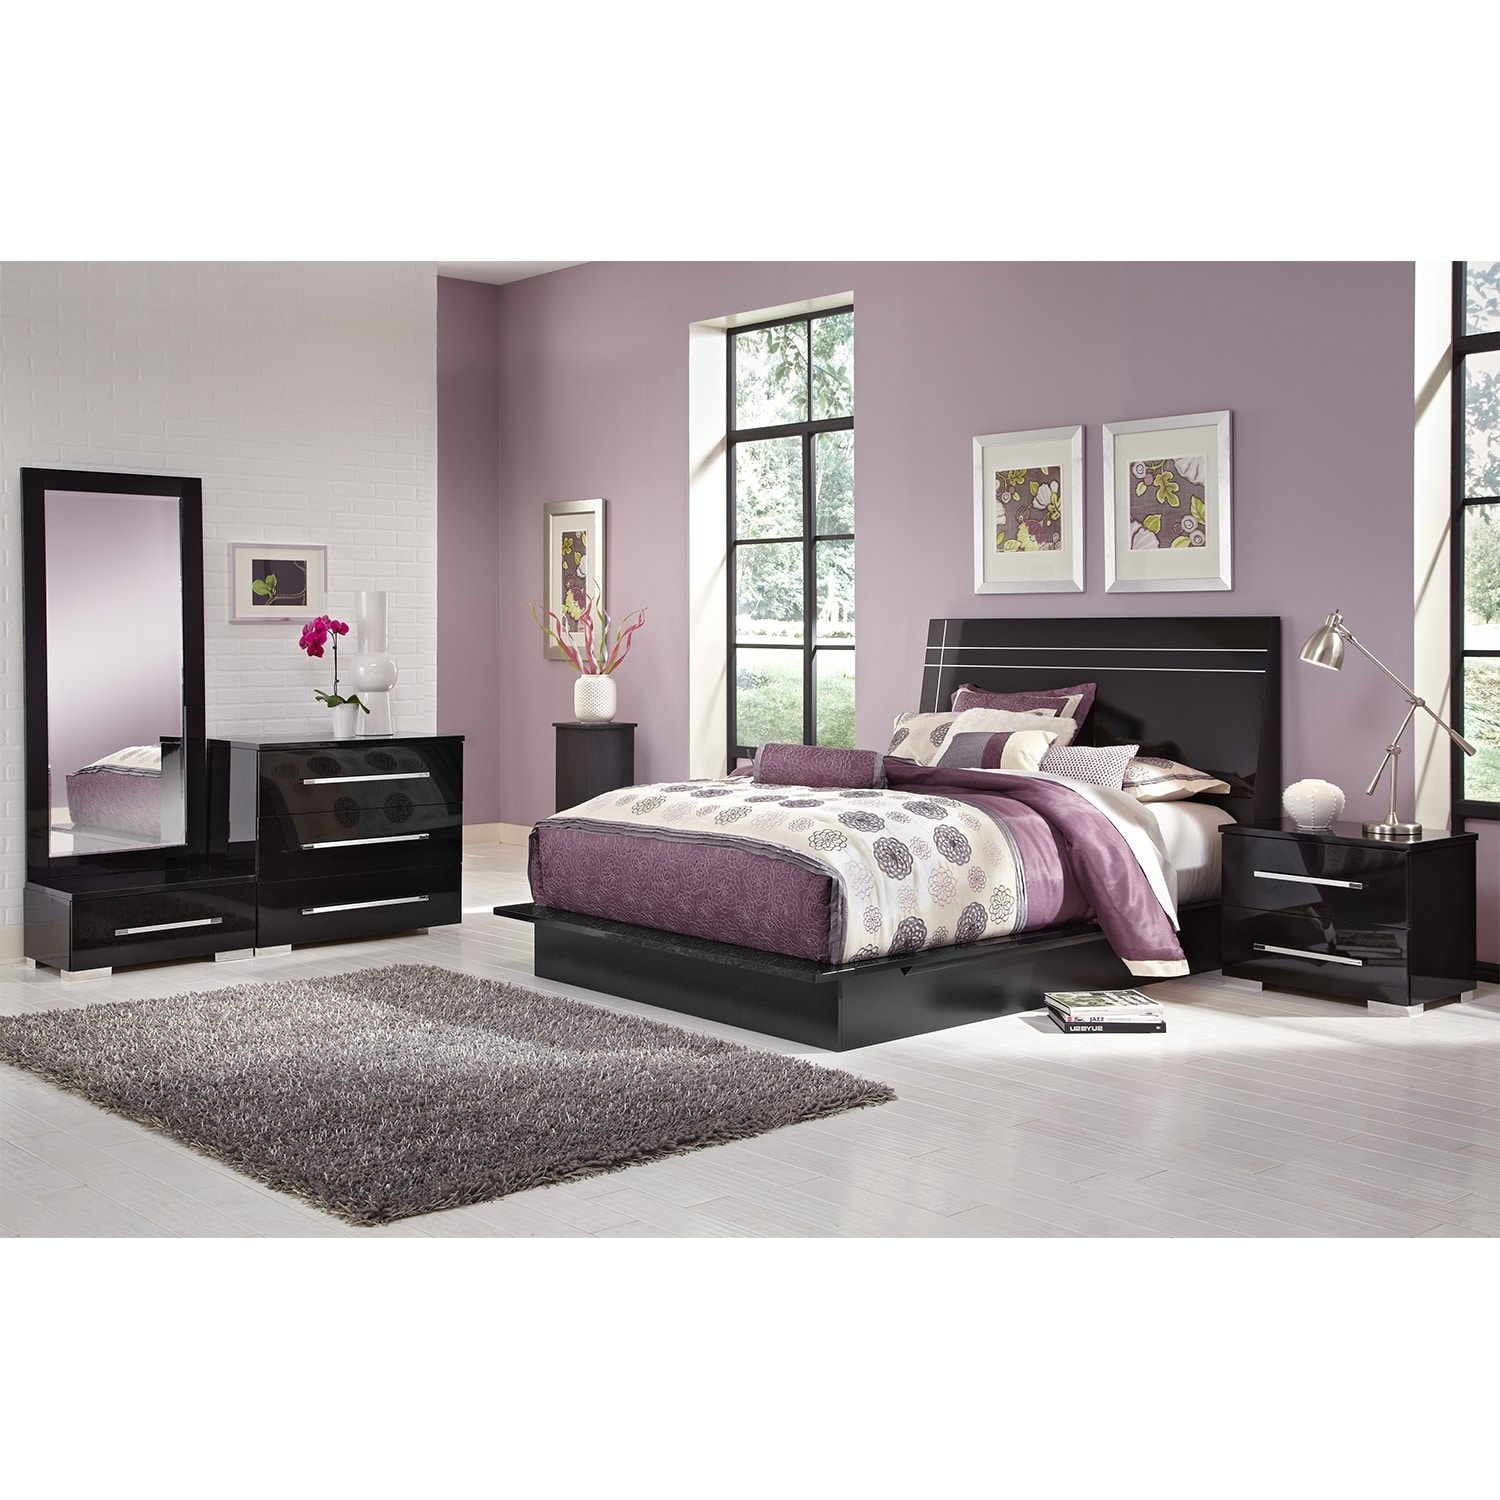 Dimora 5 Piece Queen Panel Bedroom Set With Media Dresser: Dimora 6-Piece Queen Panel Bedroom Set - Black